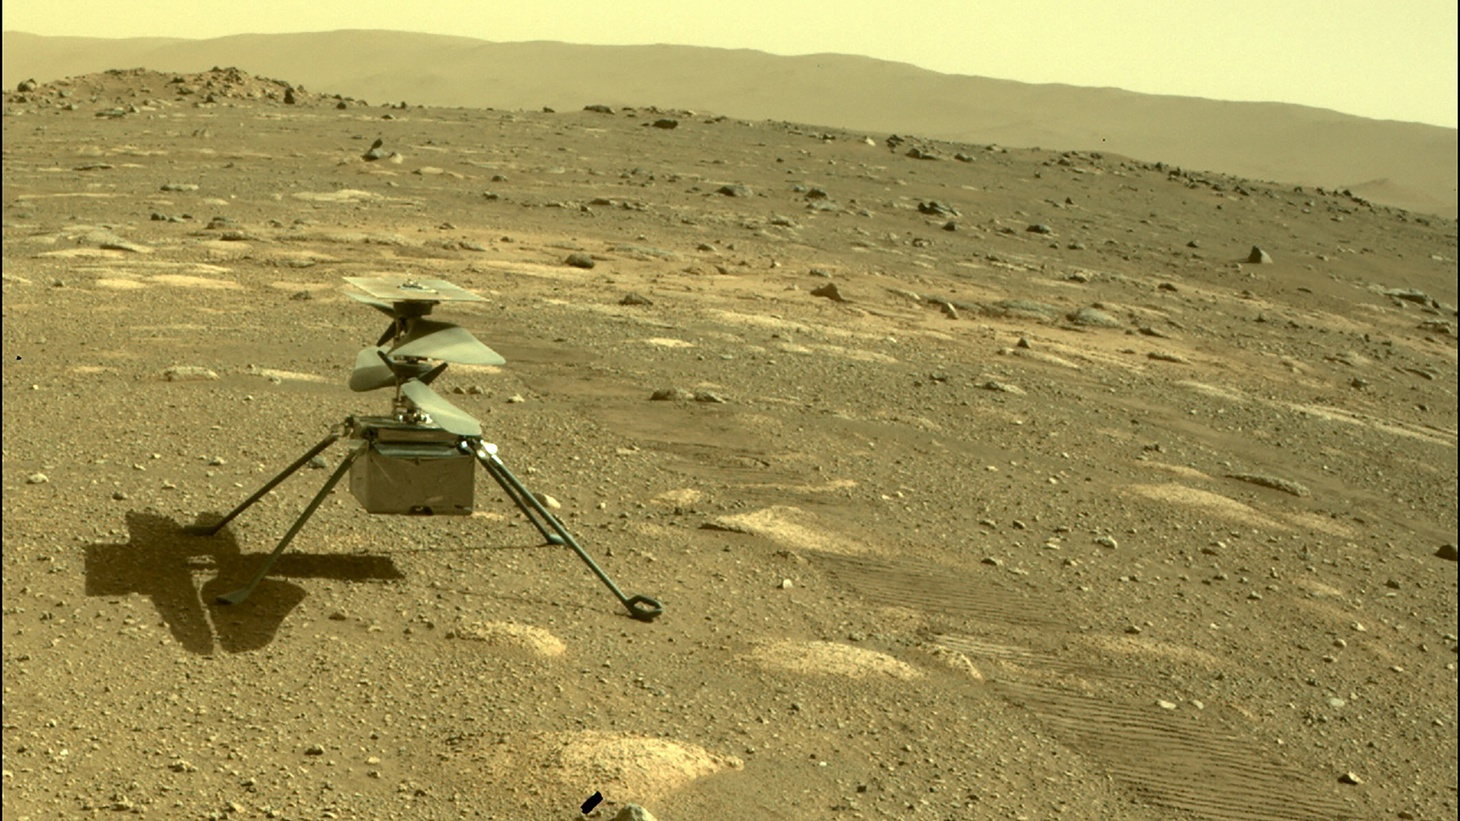 NASA's Ingenuity helicopter is seen on Mars, as viewed by the Perseverance rover, on April 4, 2021.